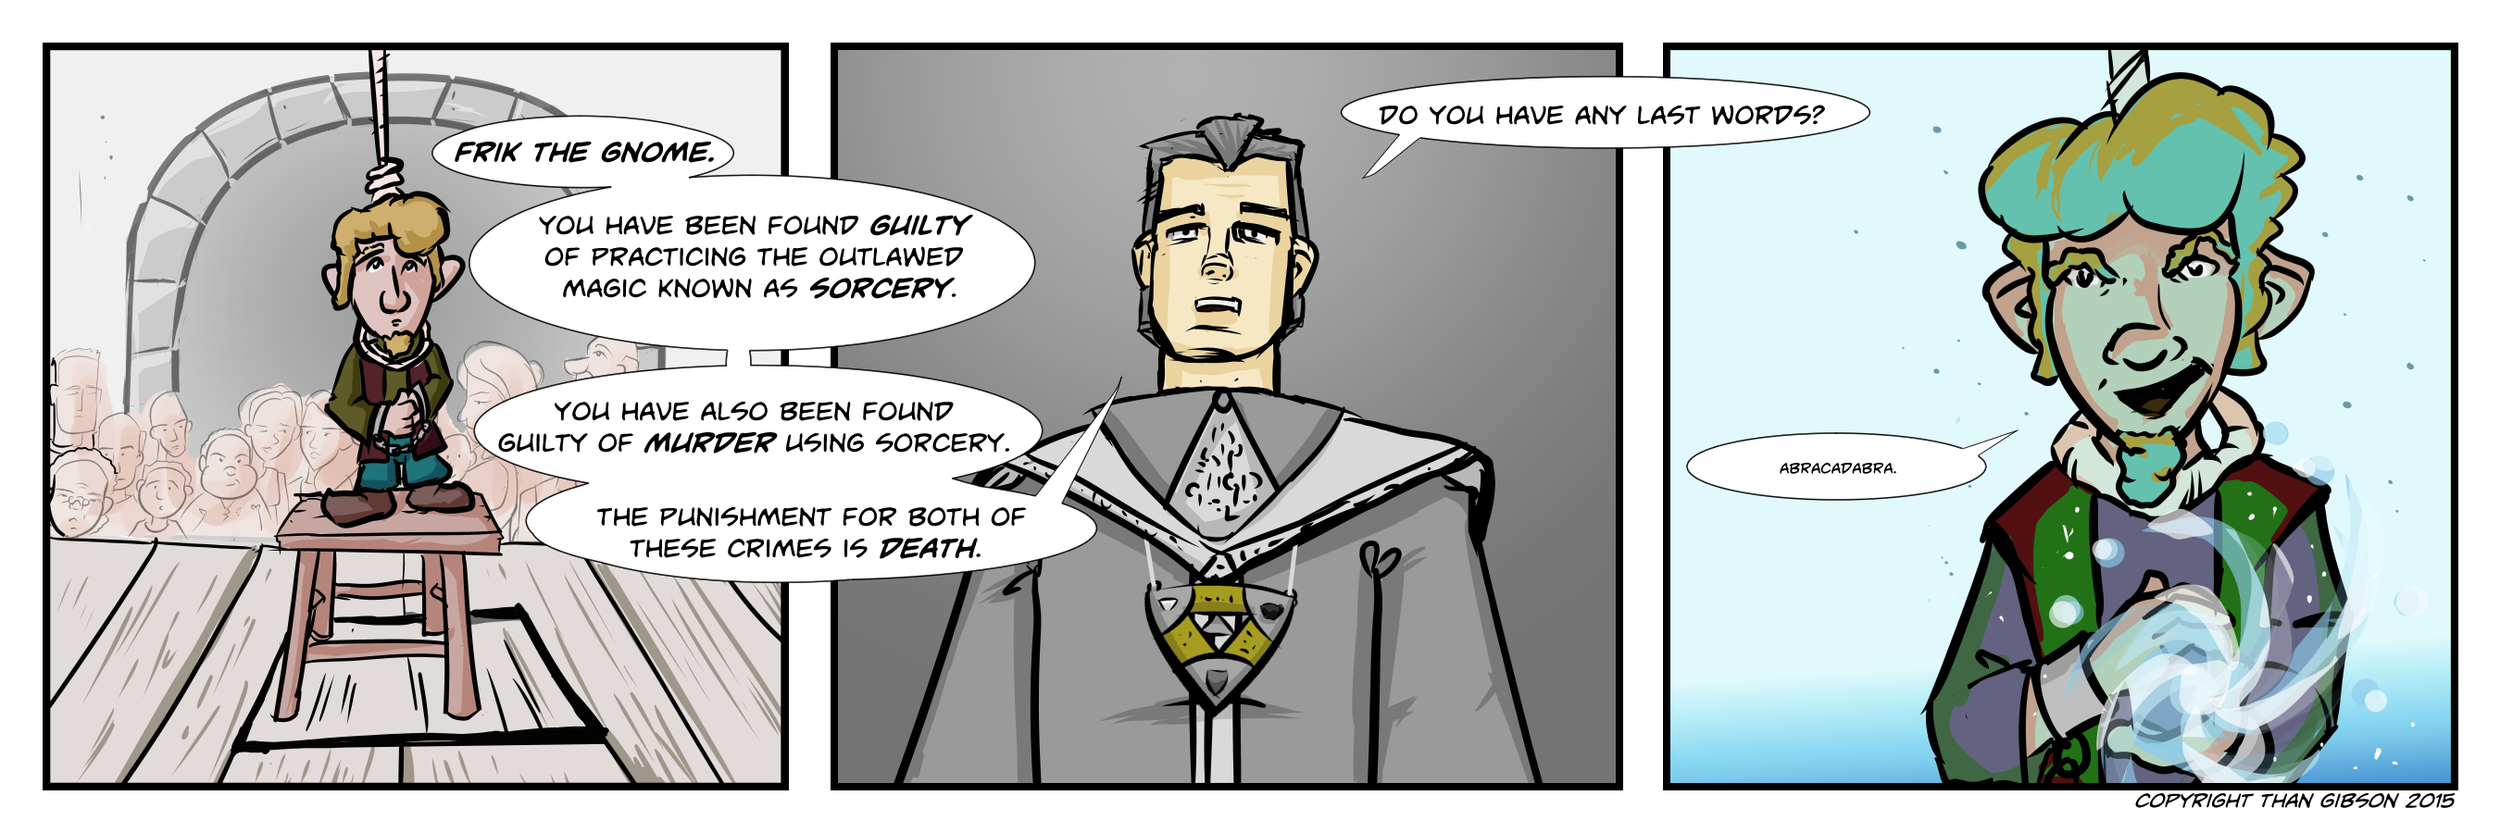 A Chronicle of Thieves -Chapter 2, Strip 11